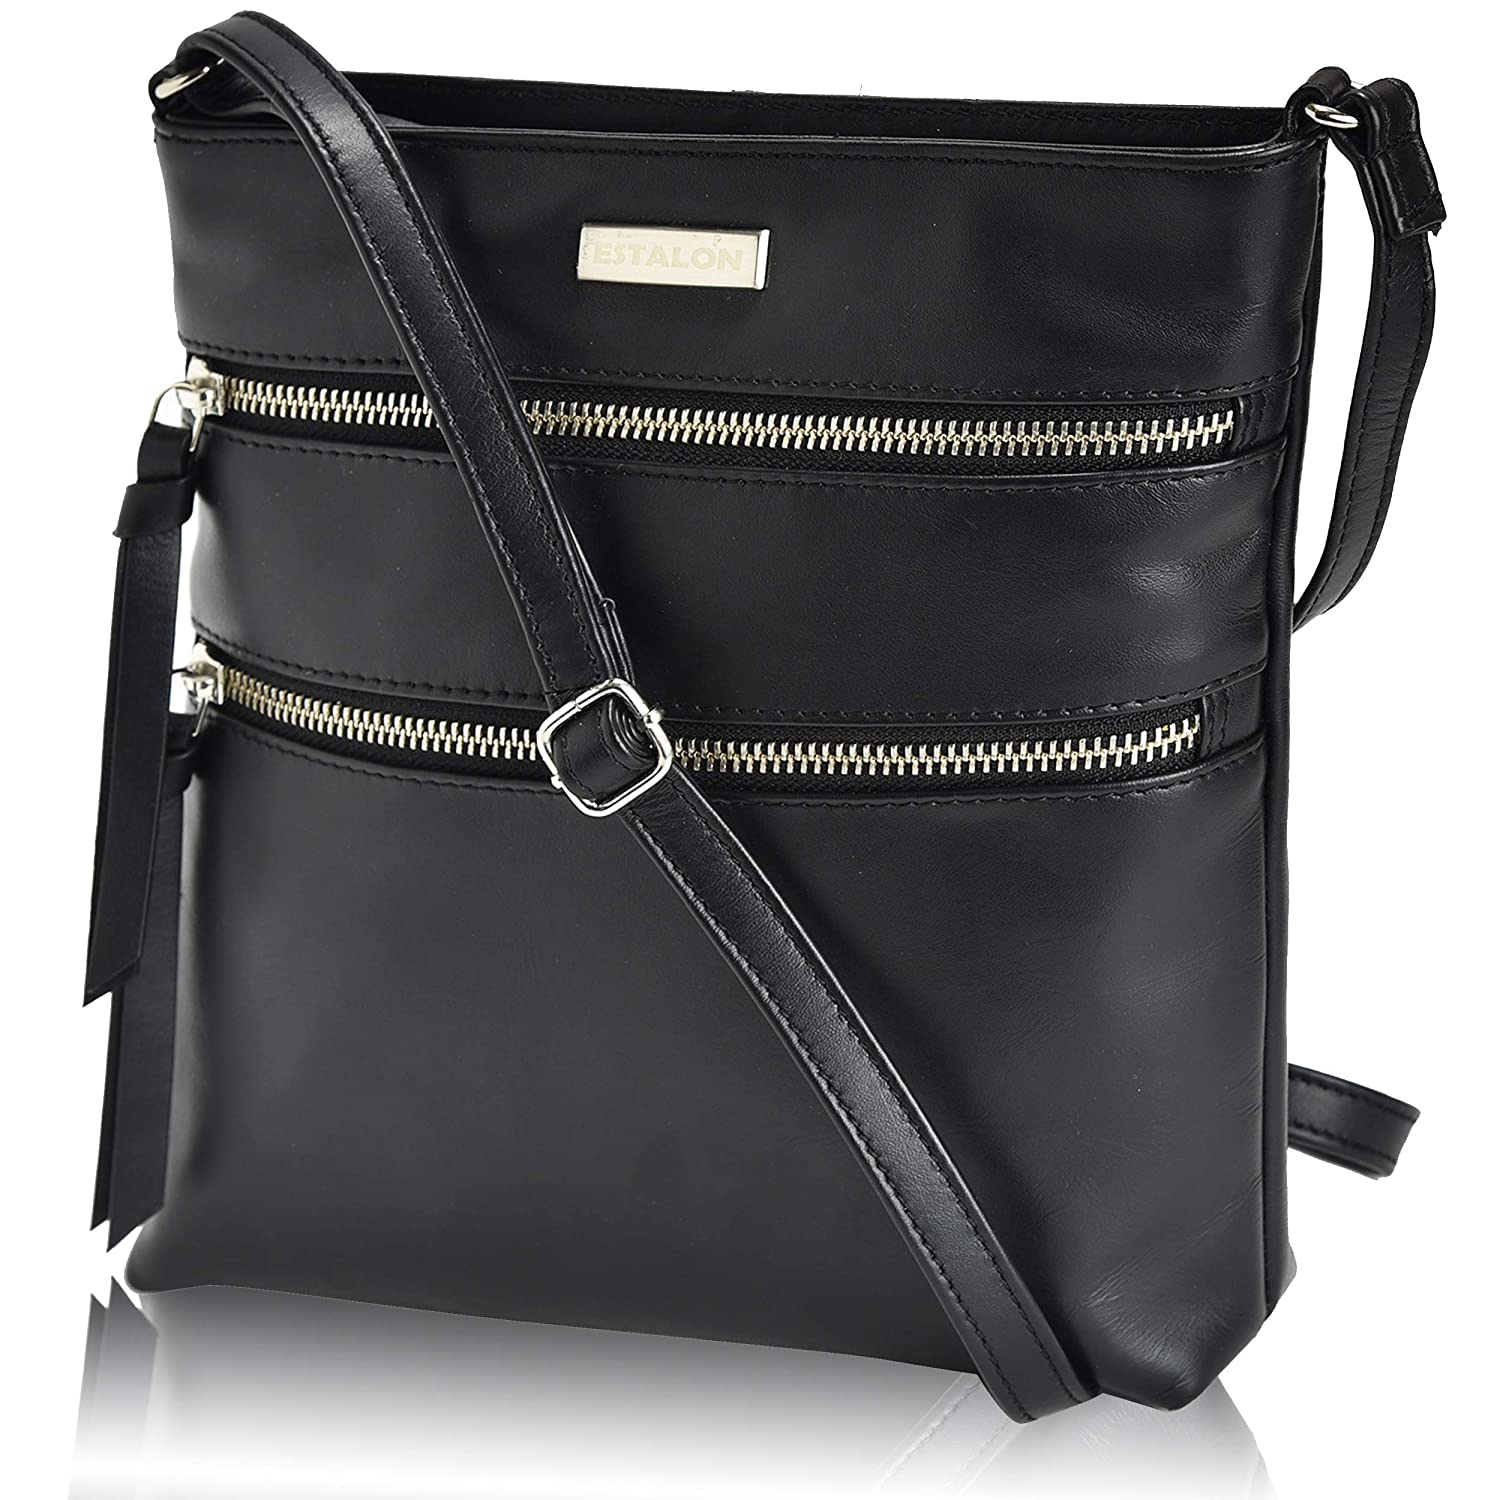 1287c8637 Leather Crossbody Purse for Women- Small Crossover Cross Body Bag Long Over  the Shoulder Sling Womens Purses and Handbags: Handbags: Amazon.com